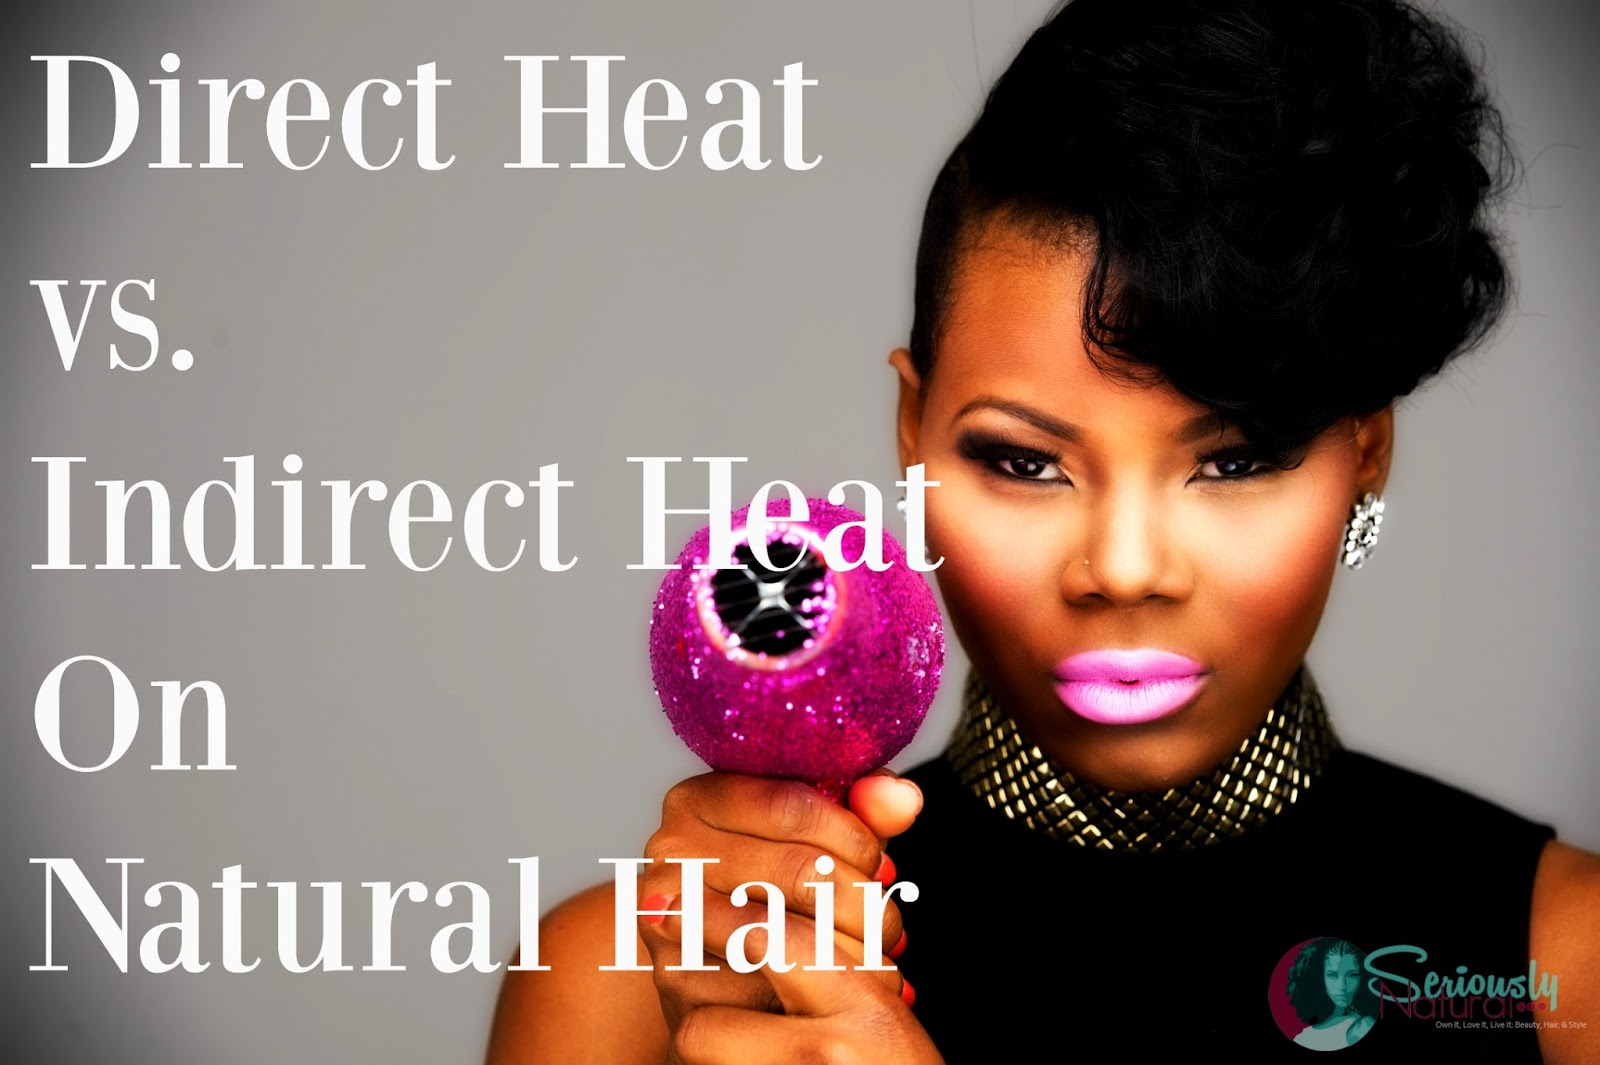 Direct Heat vs. Indirect Heat On Natural Hair